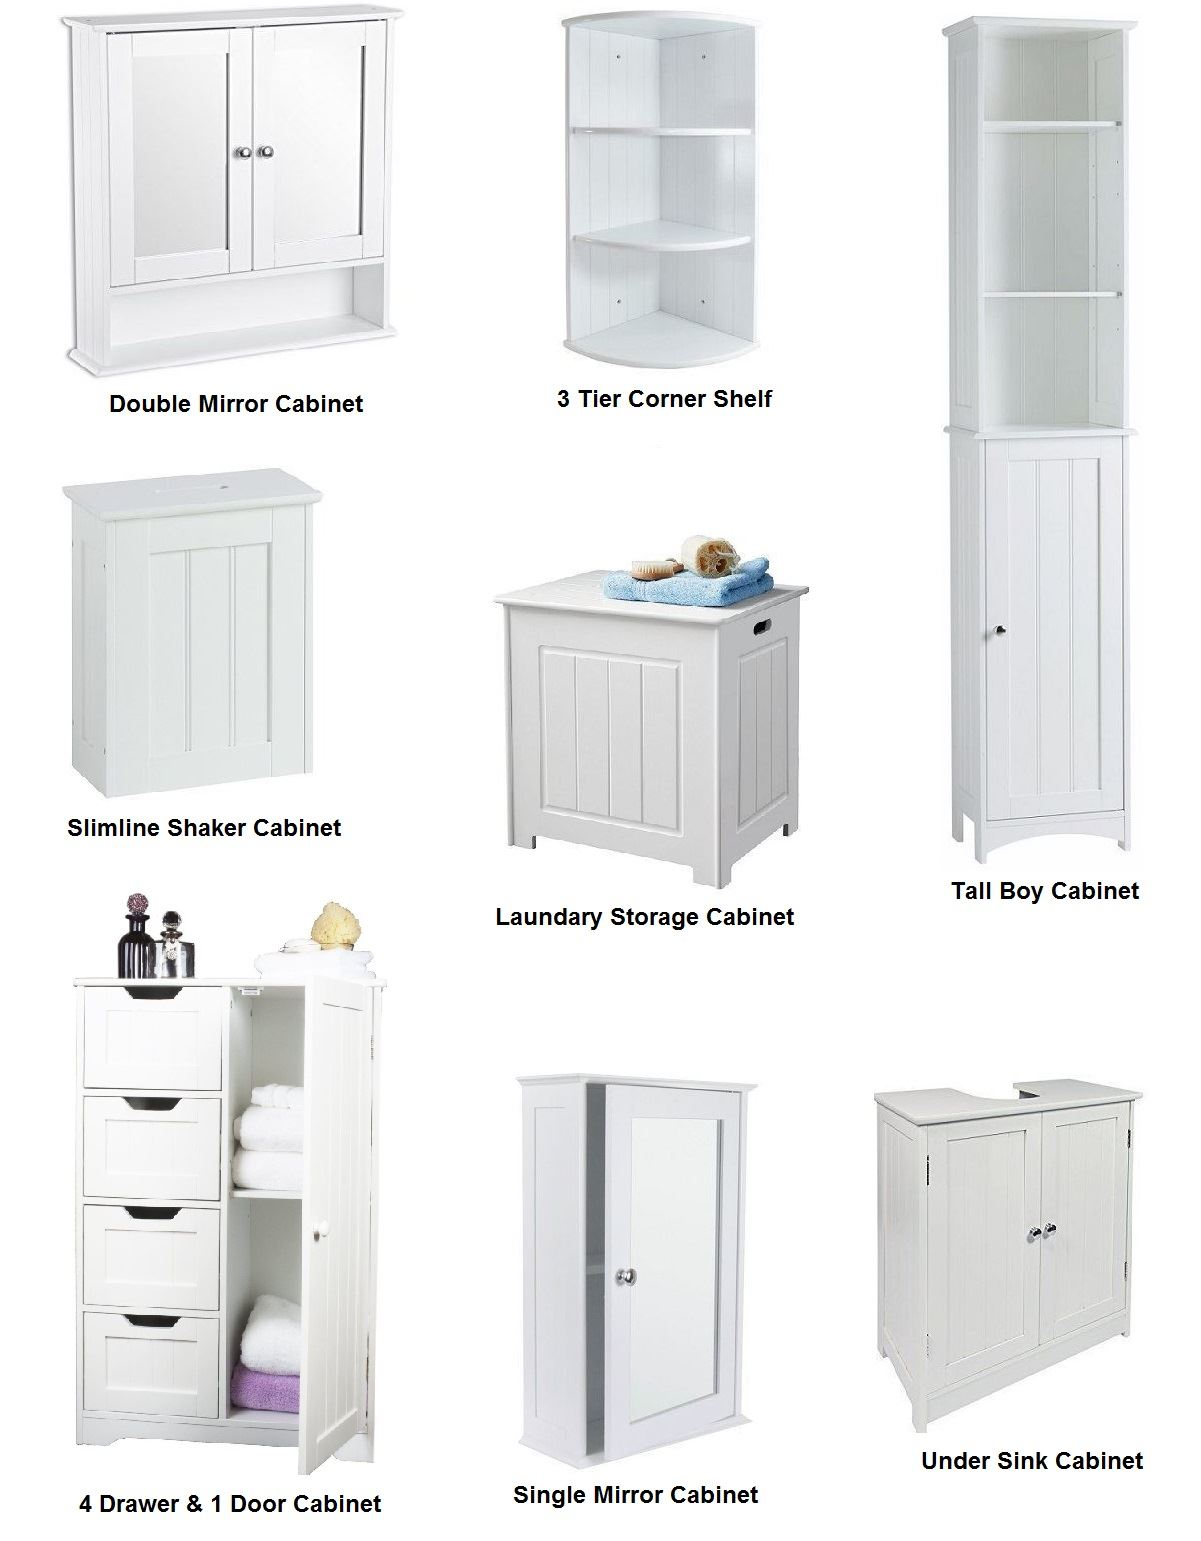 New White Wooden Furniture Bathroom Cabinet Shelf Cupboard Bedroom Storage Unit | EBay